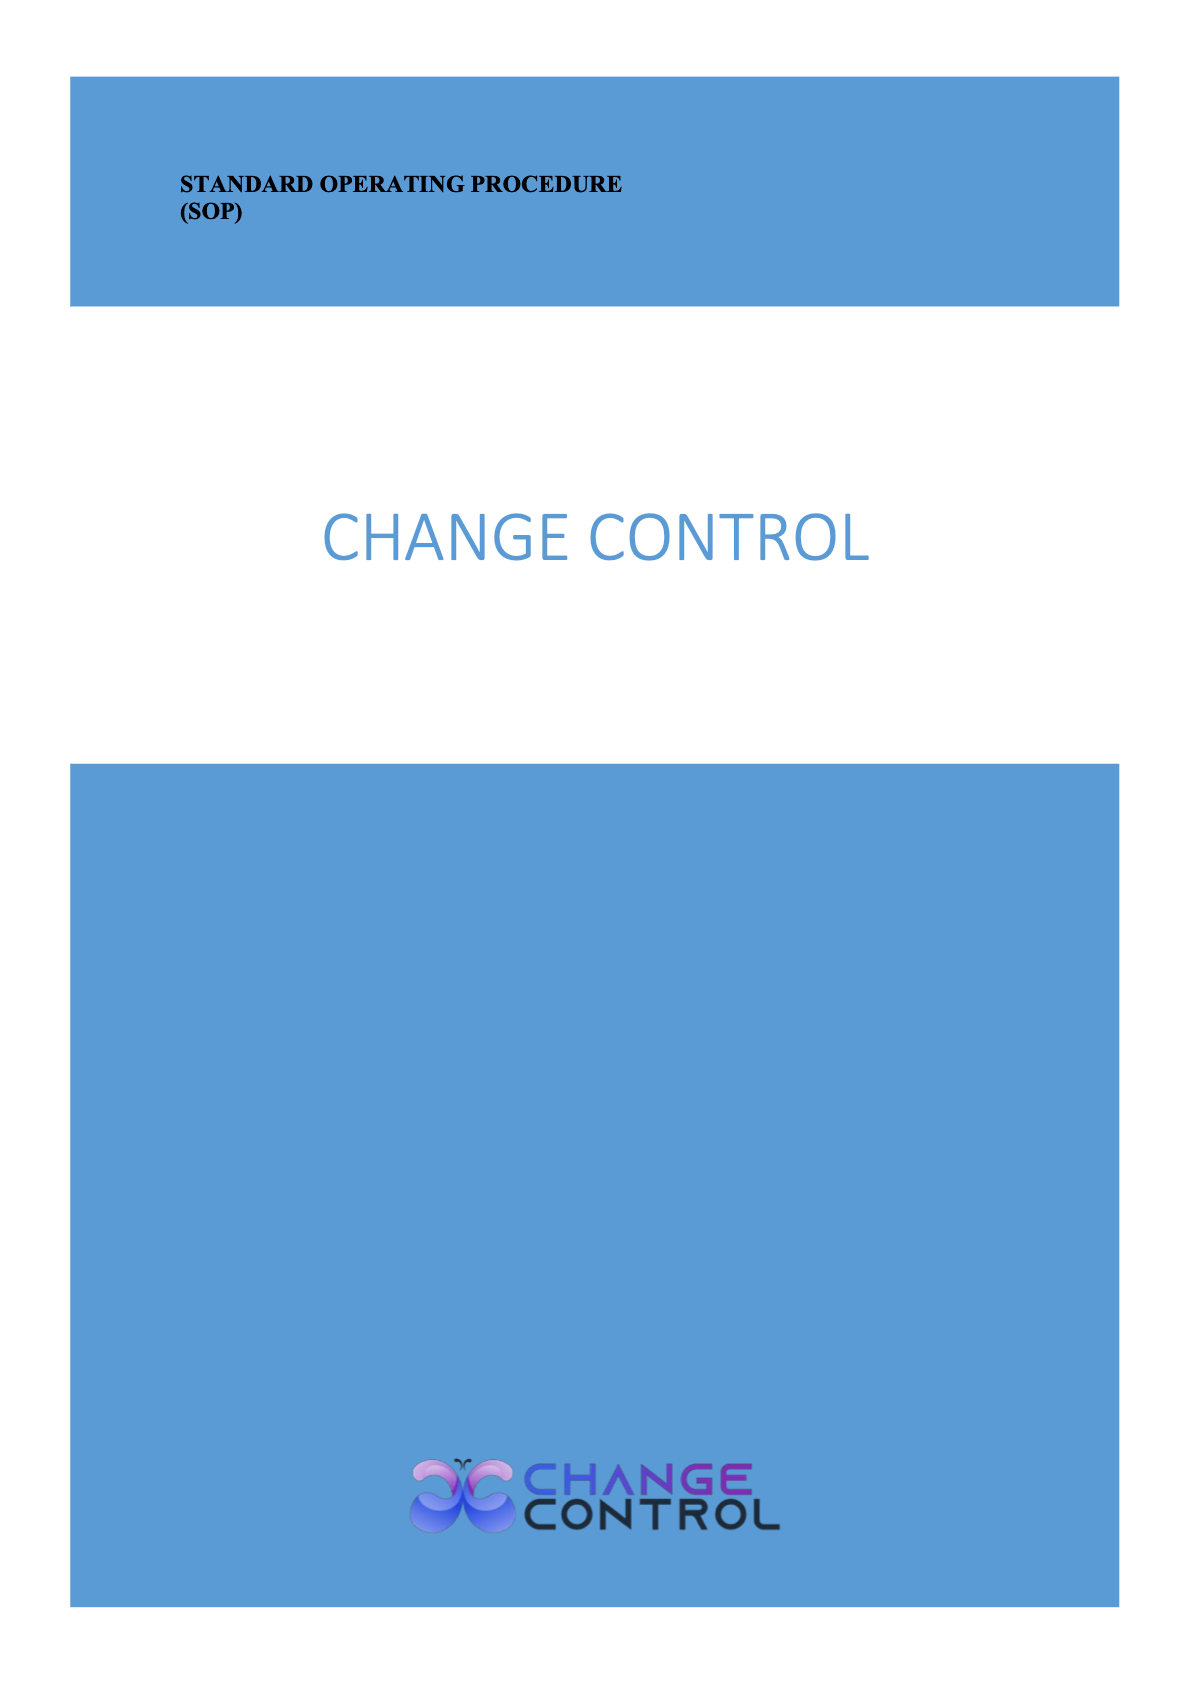 Change-Control-SOP-Example_CoverPage